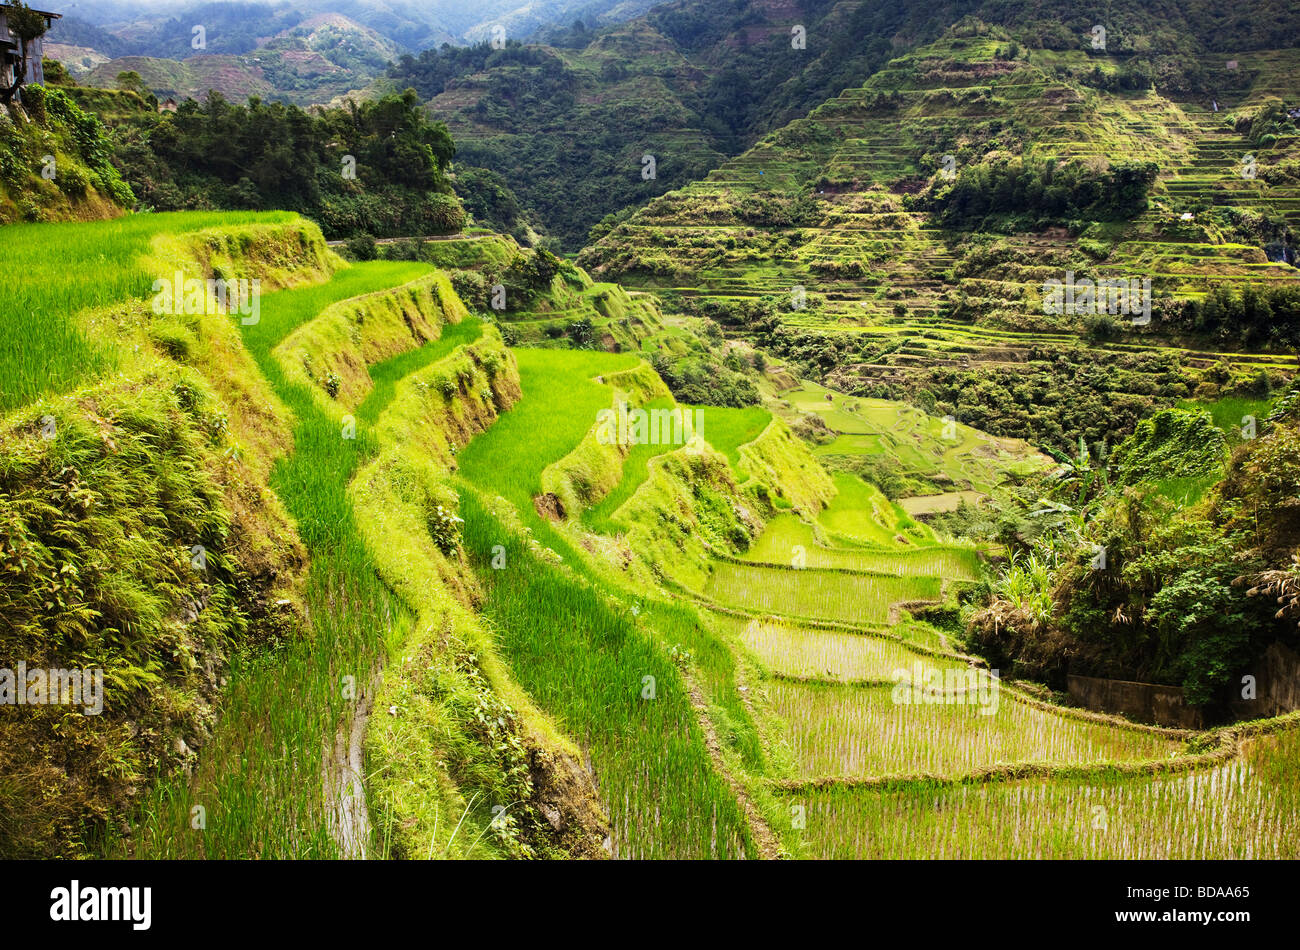 Rice terraces in Banaue Ifugao Province Northern Luzon Philippines - Stock Image